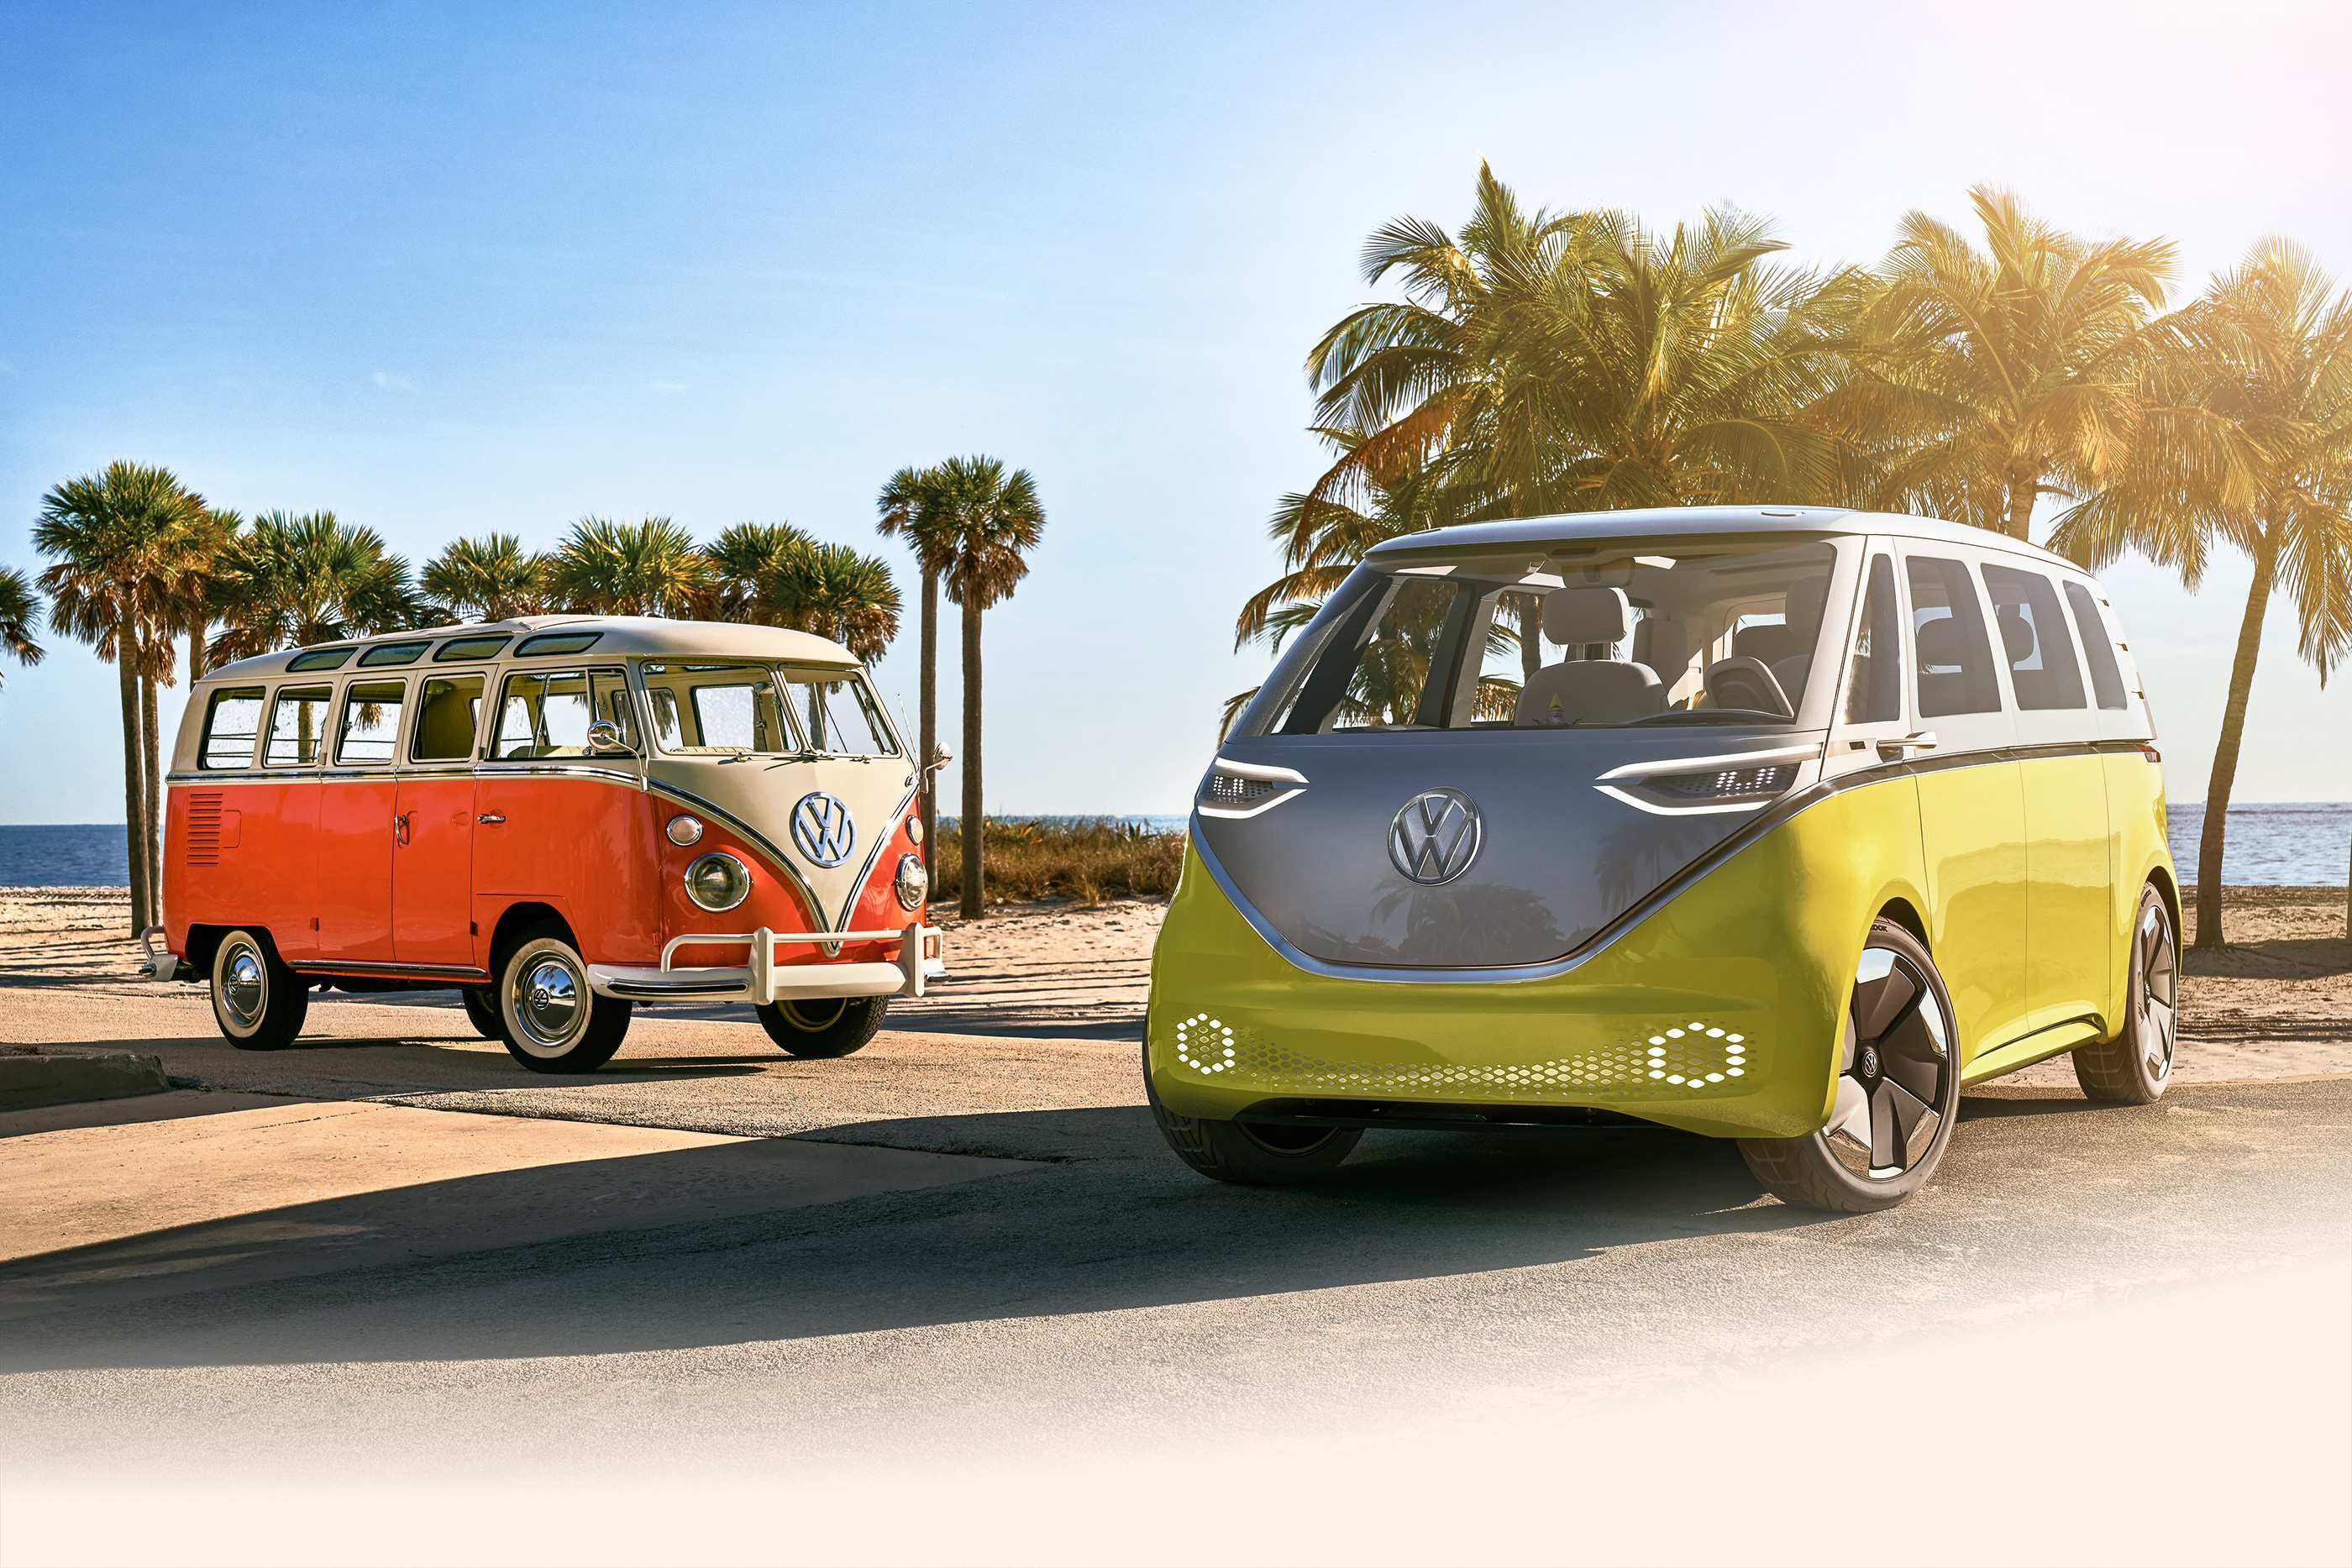 67 All New VW Minivan 2020 Configurations for VW Minivan 2020